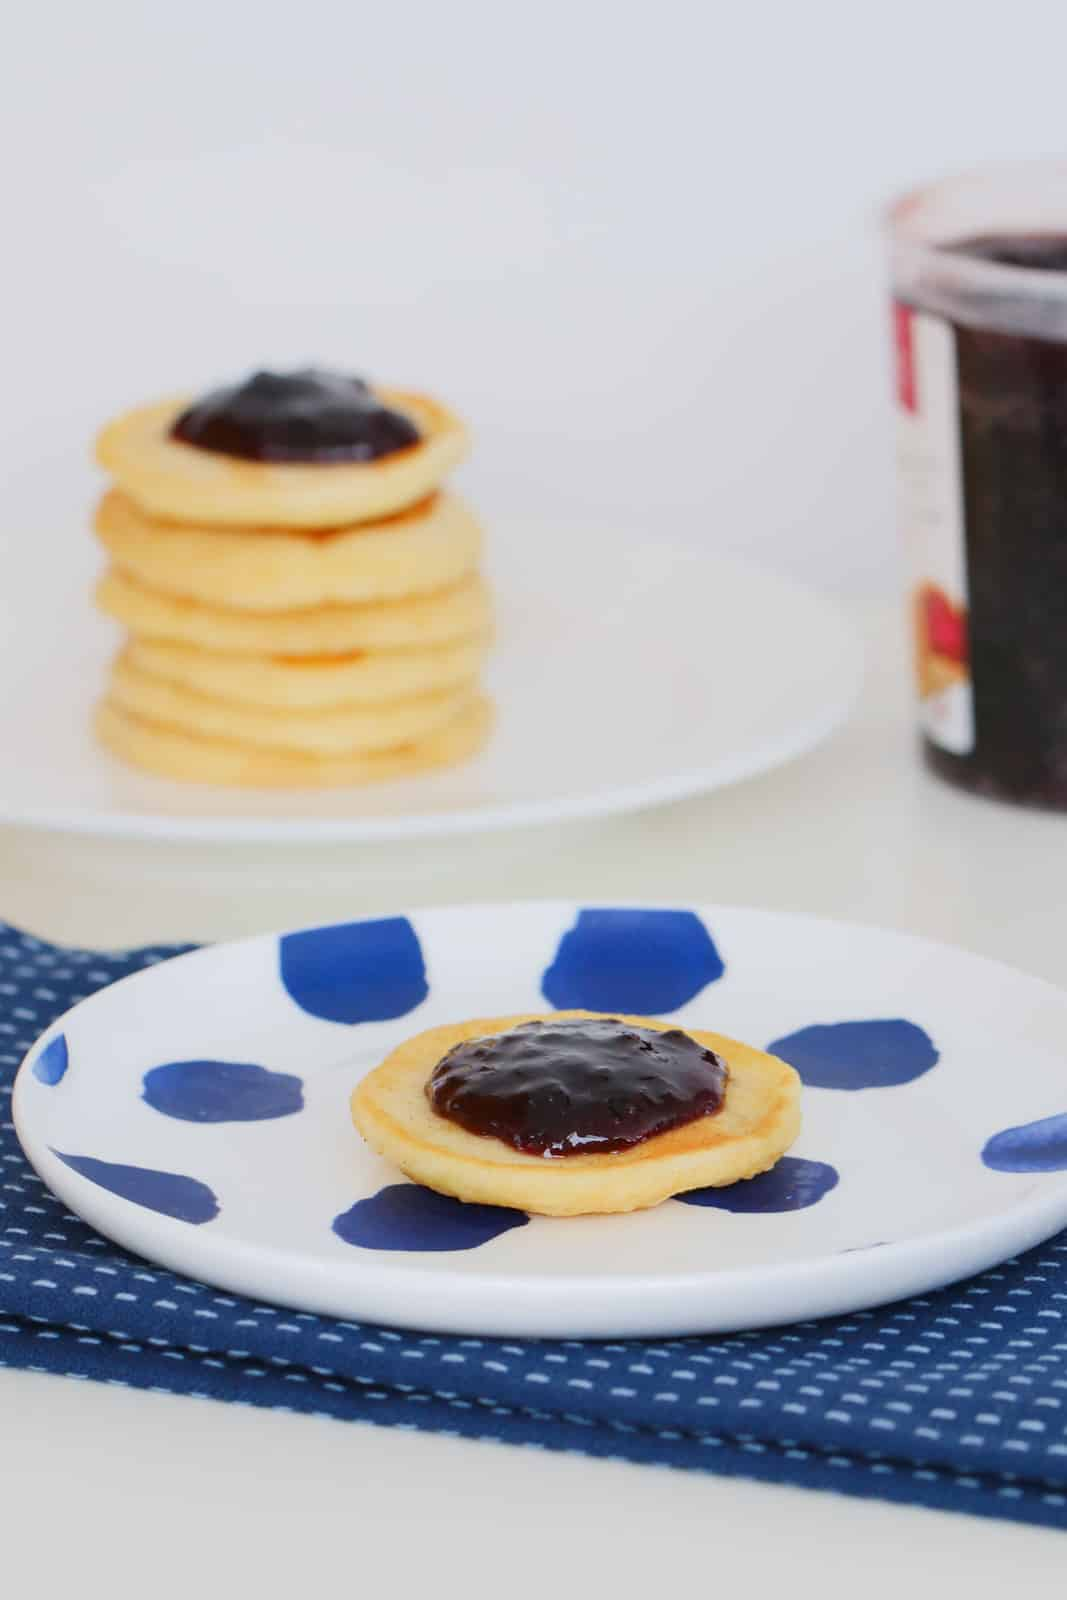 A jam topped pikelet on a blue and white plate.